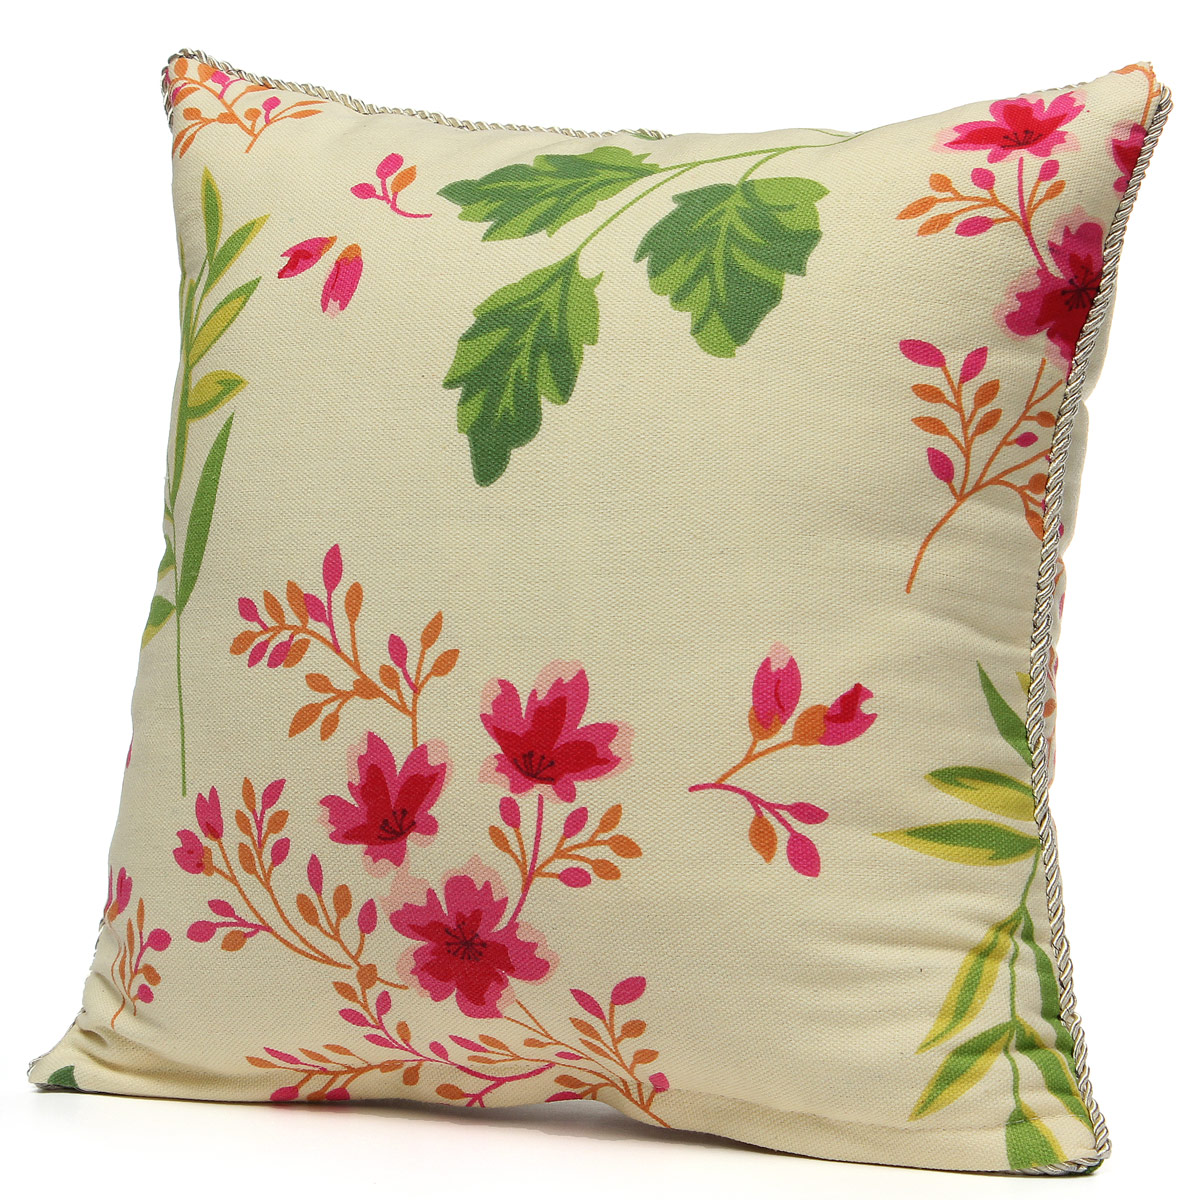 Decorative Pillows Vintage : Vintage Fashion Square Throw Pillow Cases Home Sofa Decorative Cushion Cover